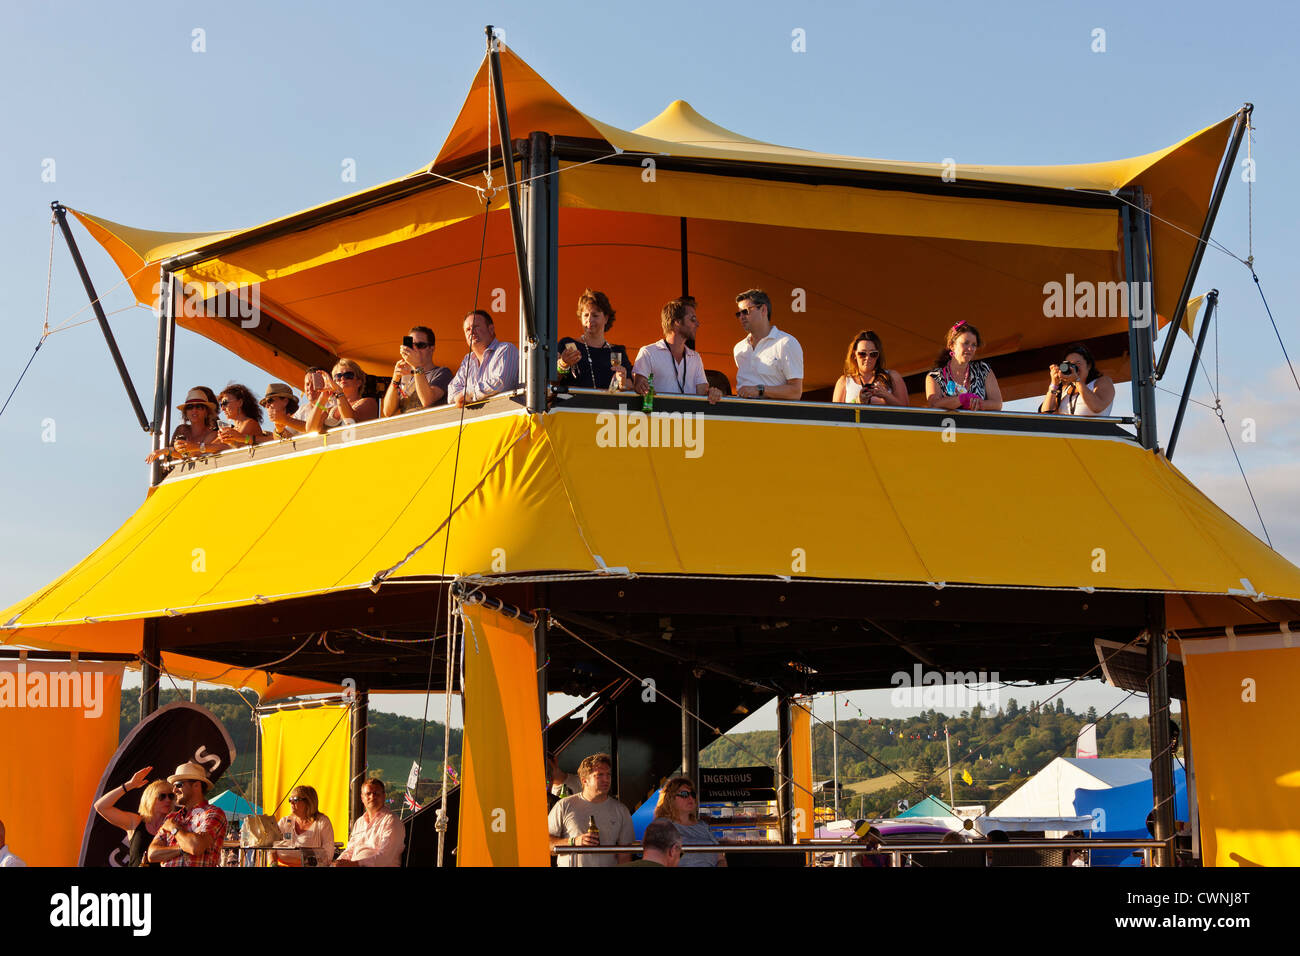 VIP vantage point at the Rewind Festival Henley on Thames 2012. JMH6036 - Stock Image